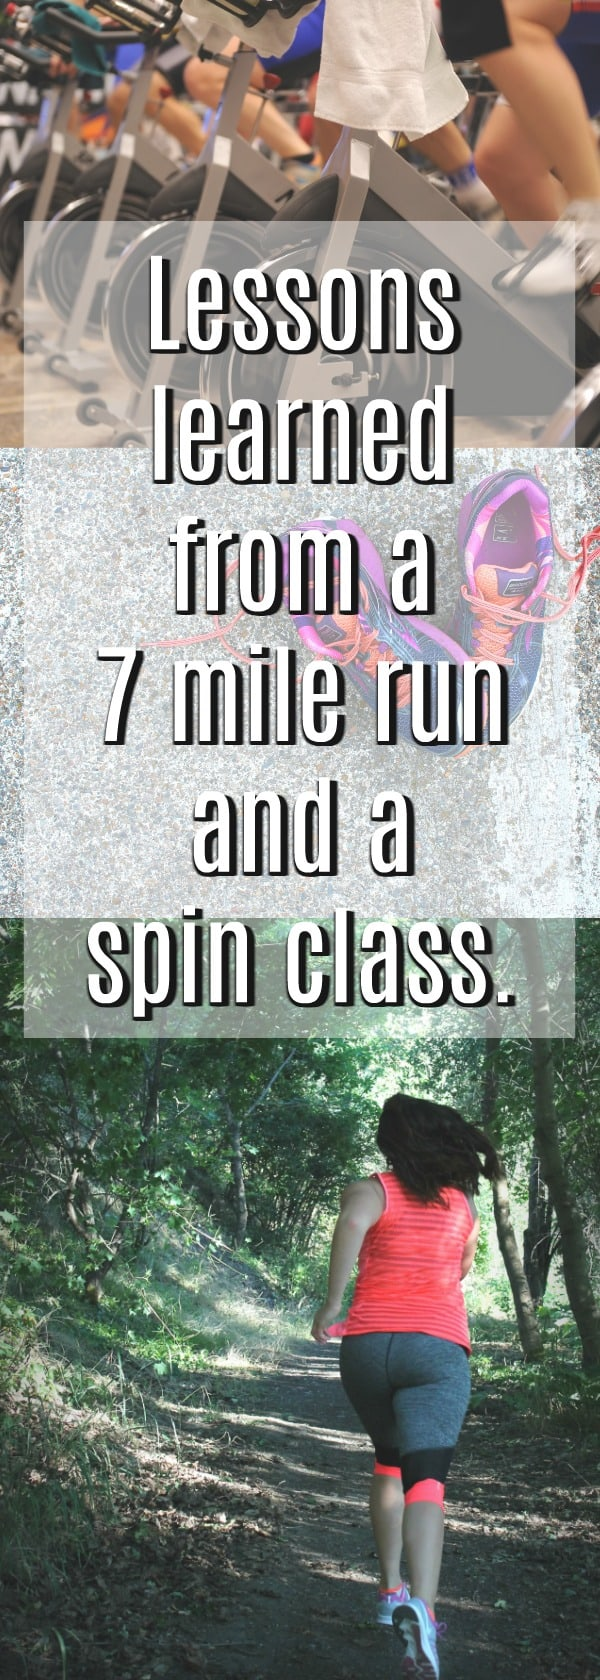 running, marathon training, half marathon, runner, woman running, how to start running, seven mile run, how to run seven miles, lessons from running, running lessons, spin class, the union spokane, spokane spin classes, spin class basics,